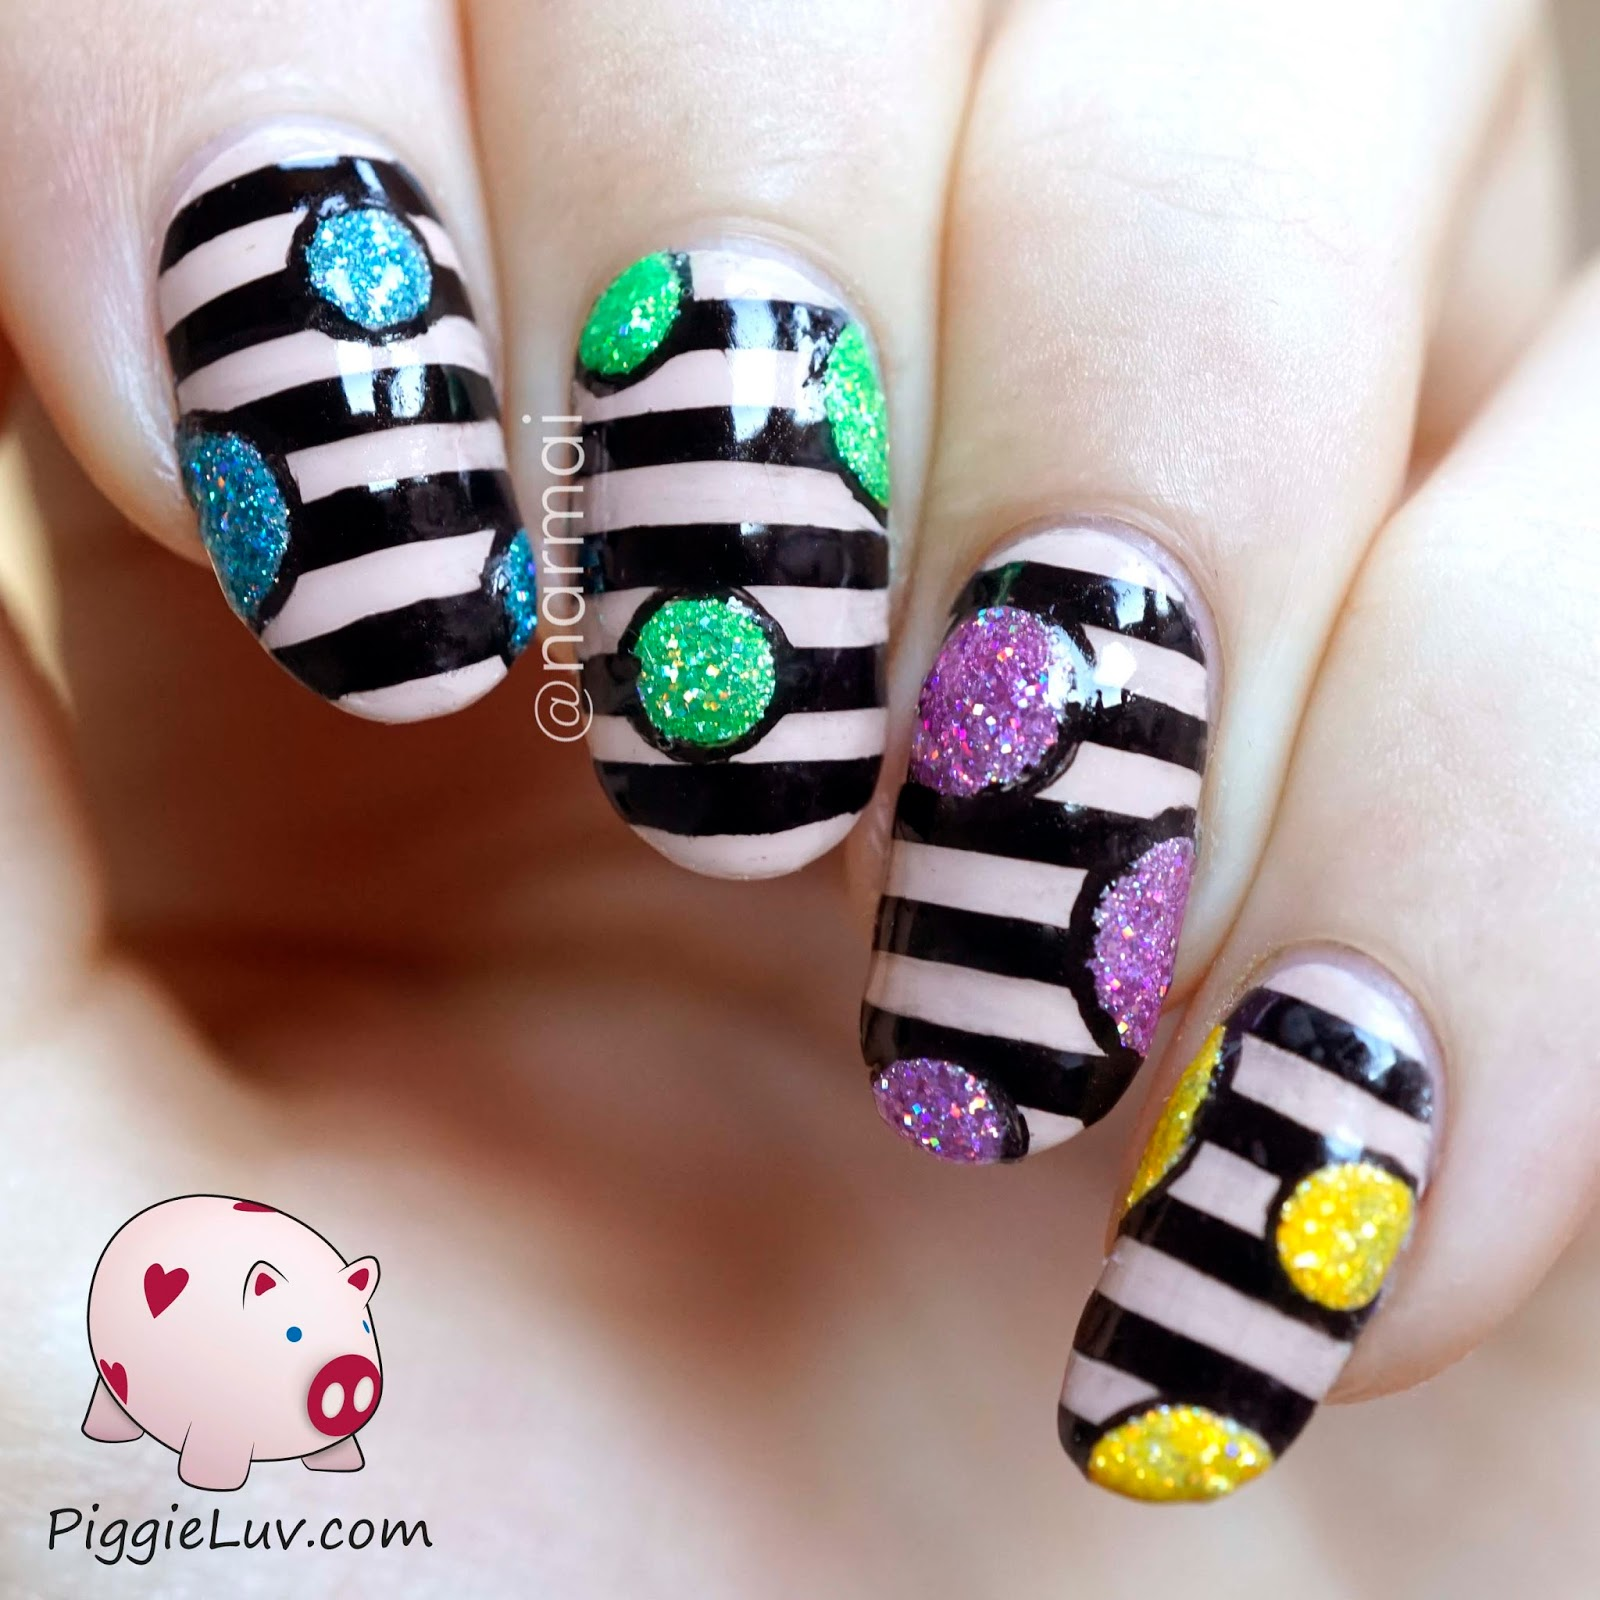 Piggieluv stripey nail art design with glitter orbs todays design is inspired by nailuminium i saw this design of hers and i love it and i kept wondering what it would look like with a little bit of prinsesfo Gallery